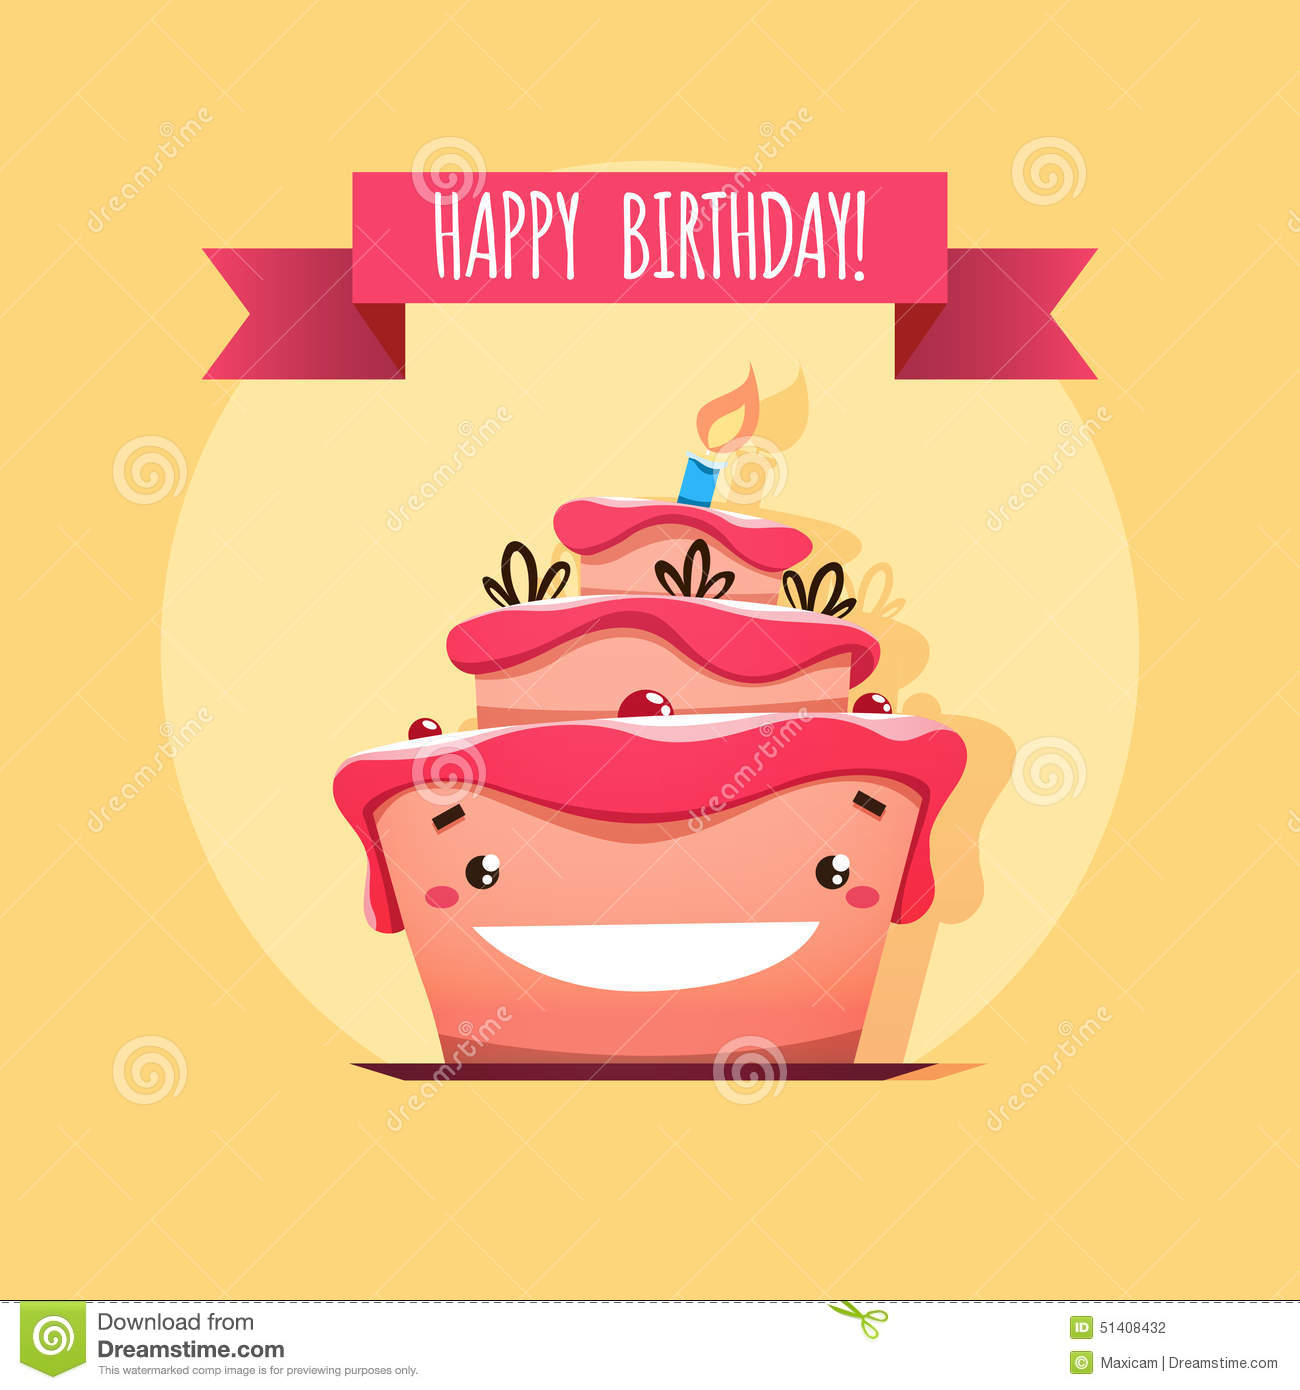 Greeting Card With Funny Birthday Cake Stock Vector - Image: 51408432